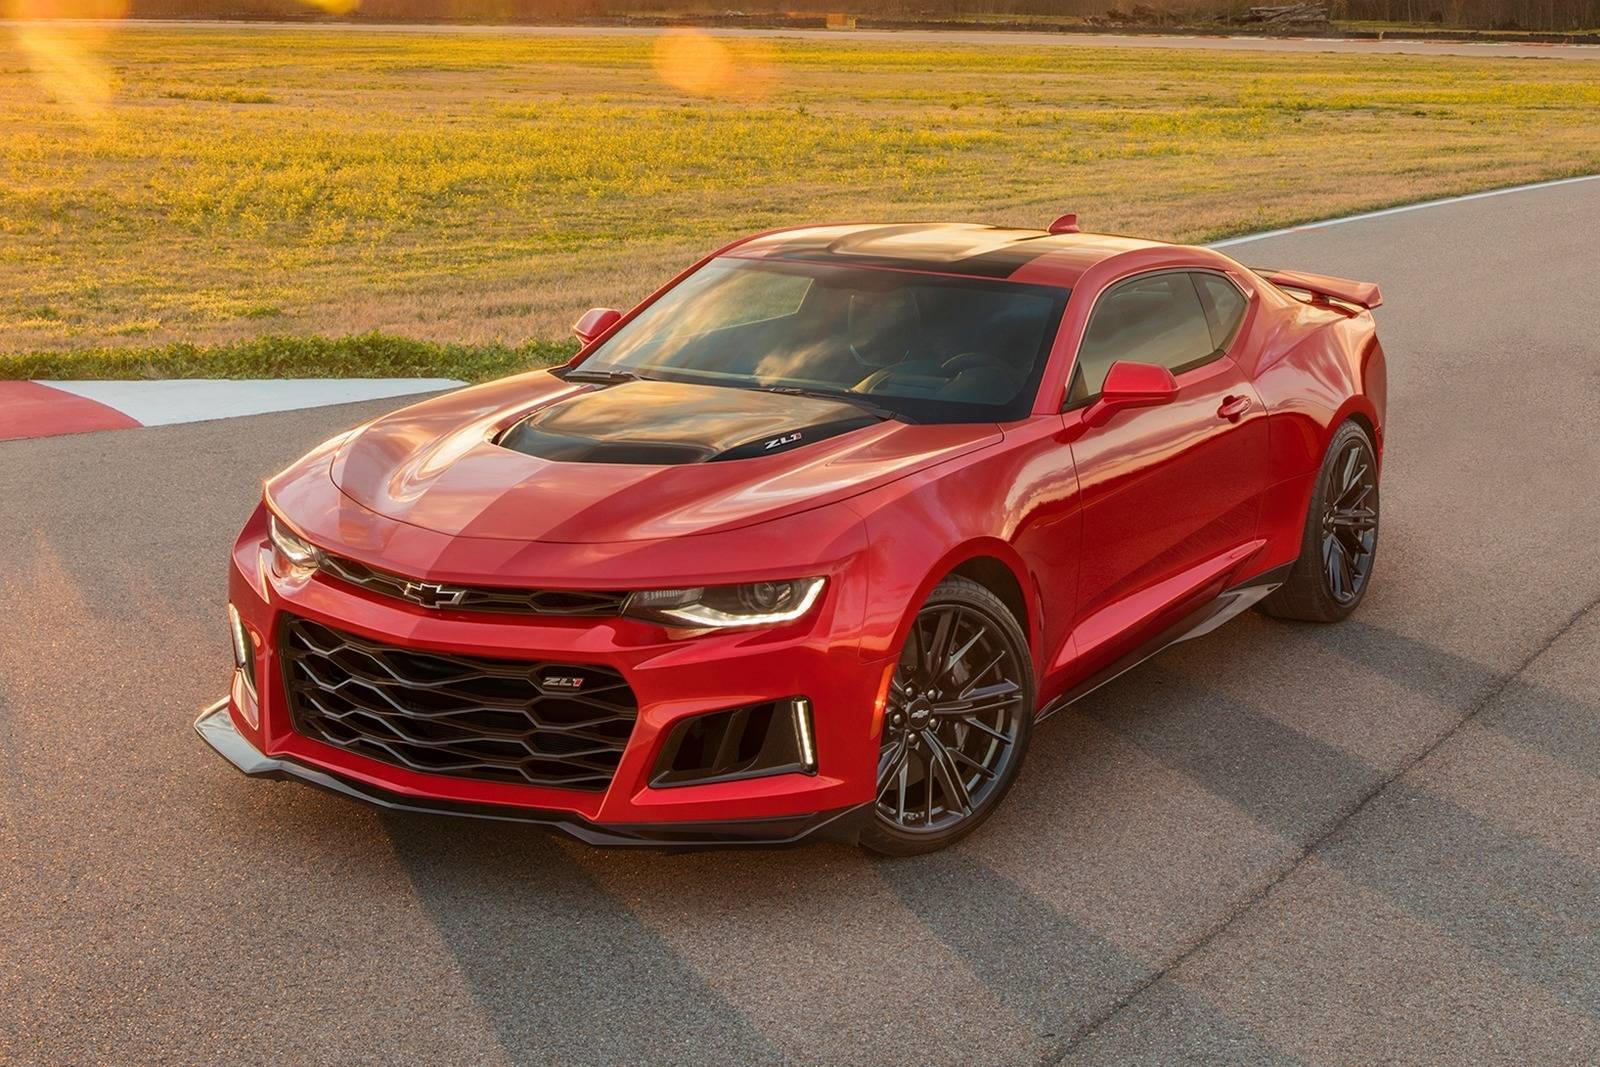 2018 Chevrolet Camaro Zl1 Coupe Review Trims Specs And